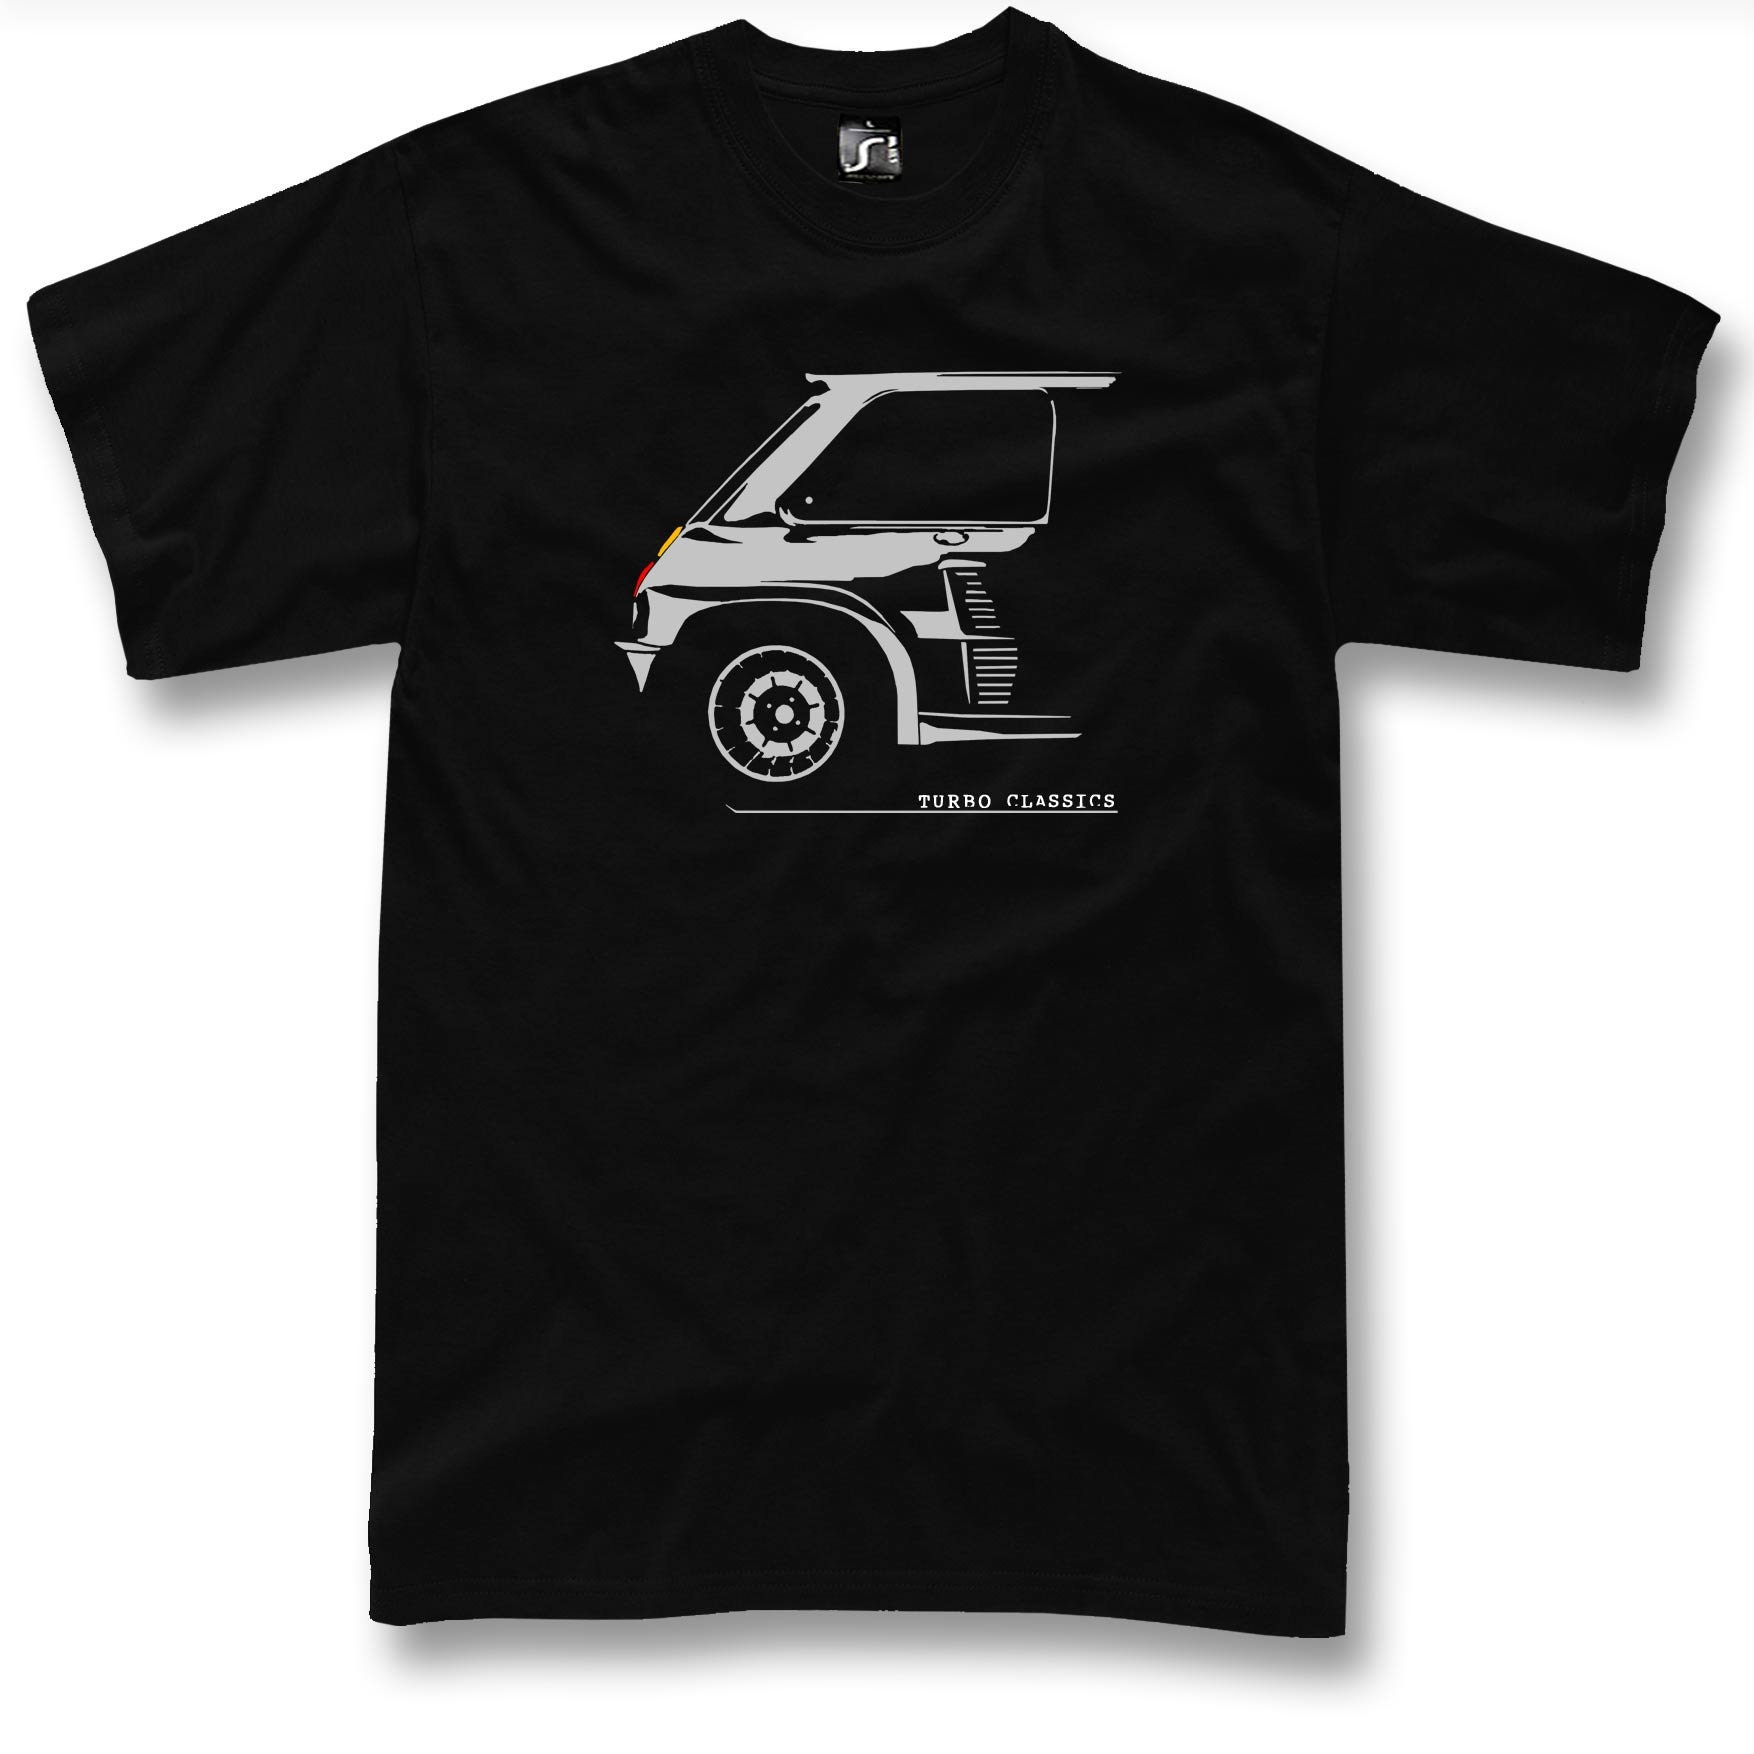 Classic tshirt for saab 900 turbo fans swedish aart t-shirt